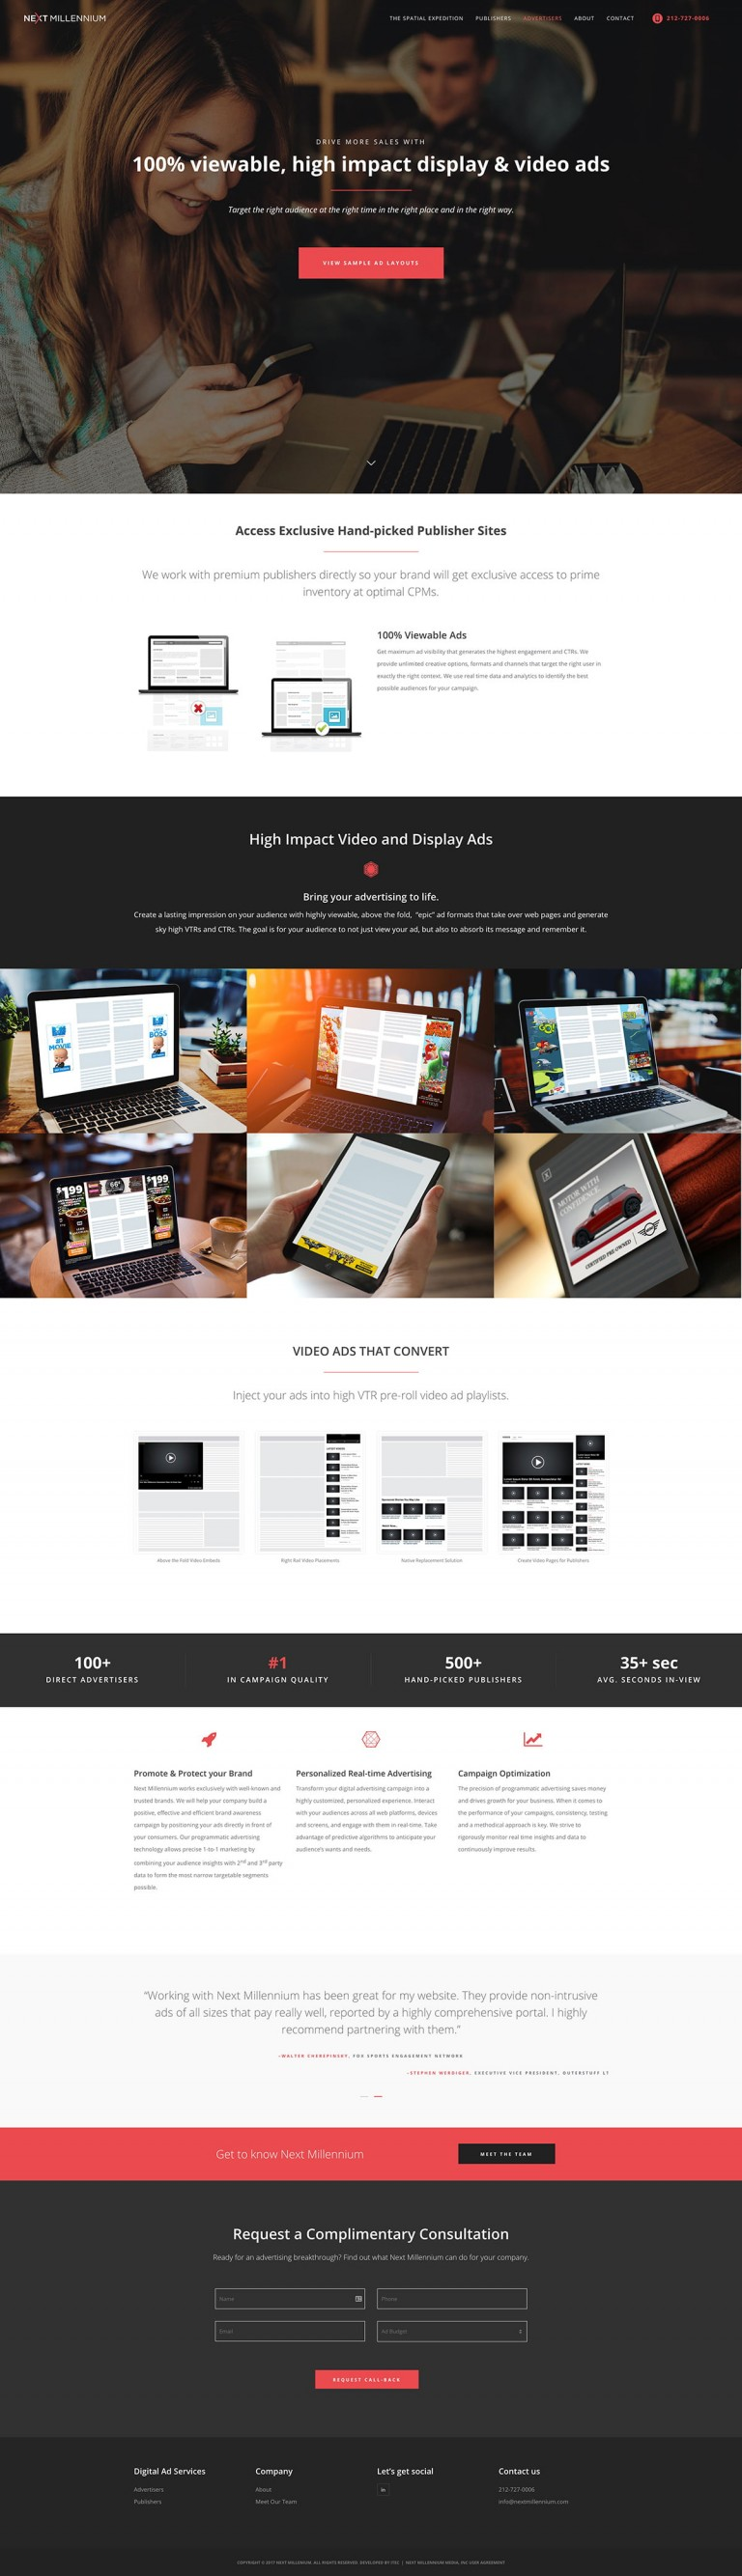 web-design-portfolio-nm3